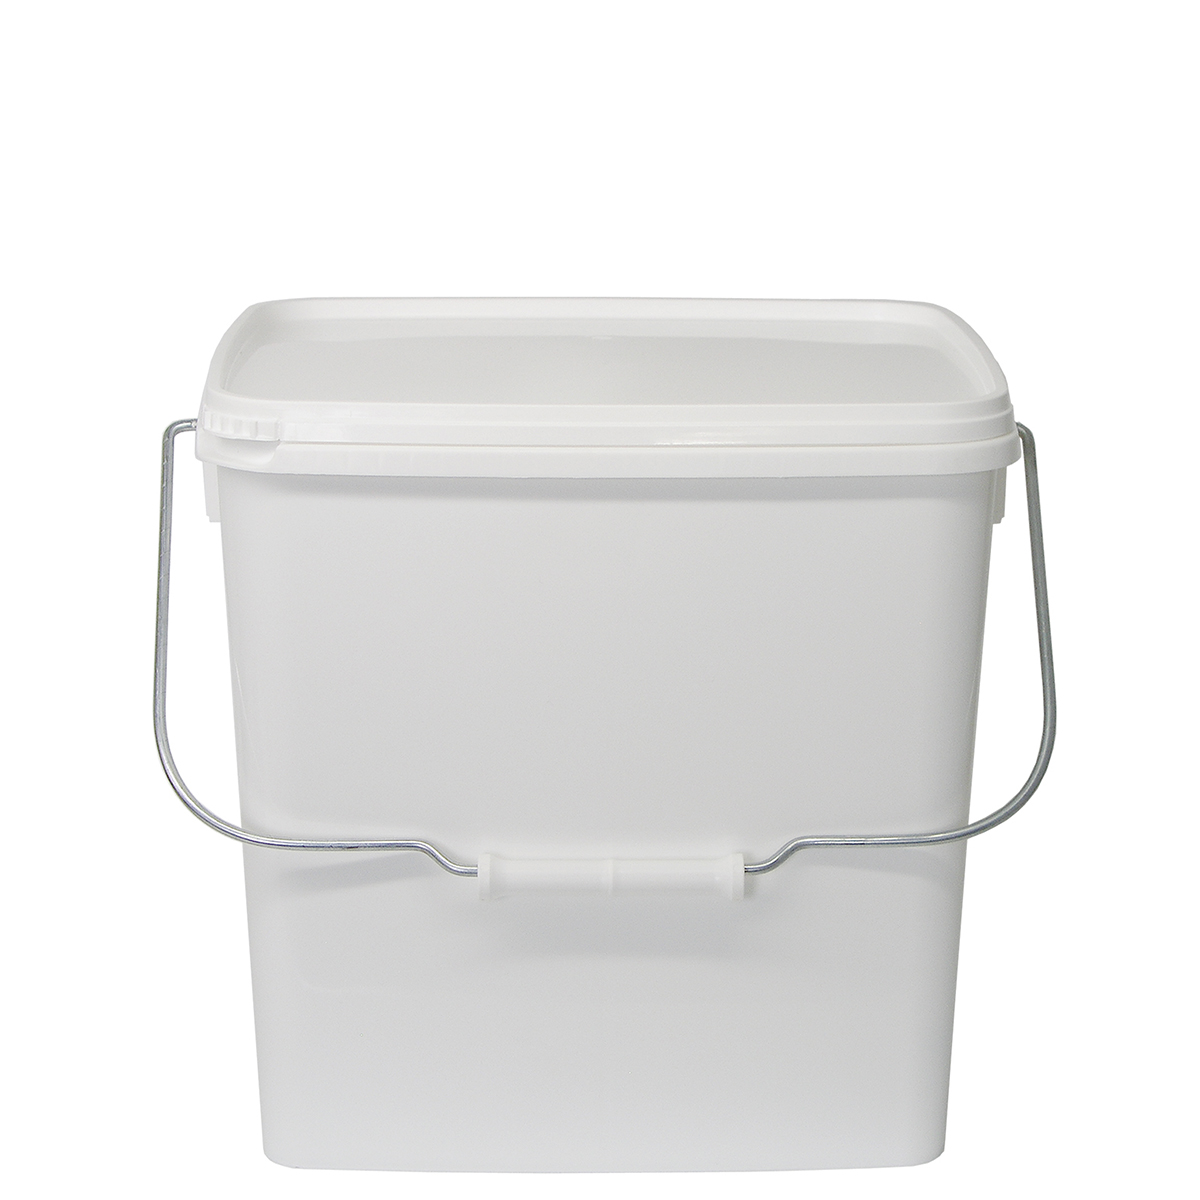 Storage container 13 liters (3.4 USgal.)